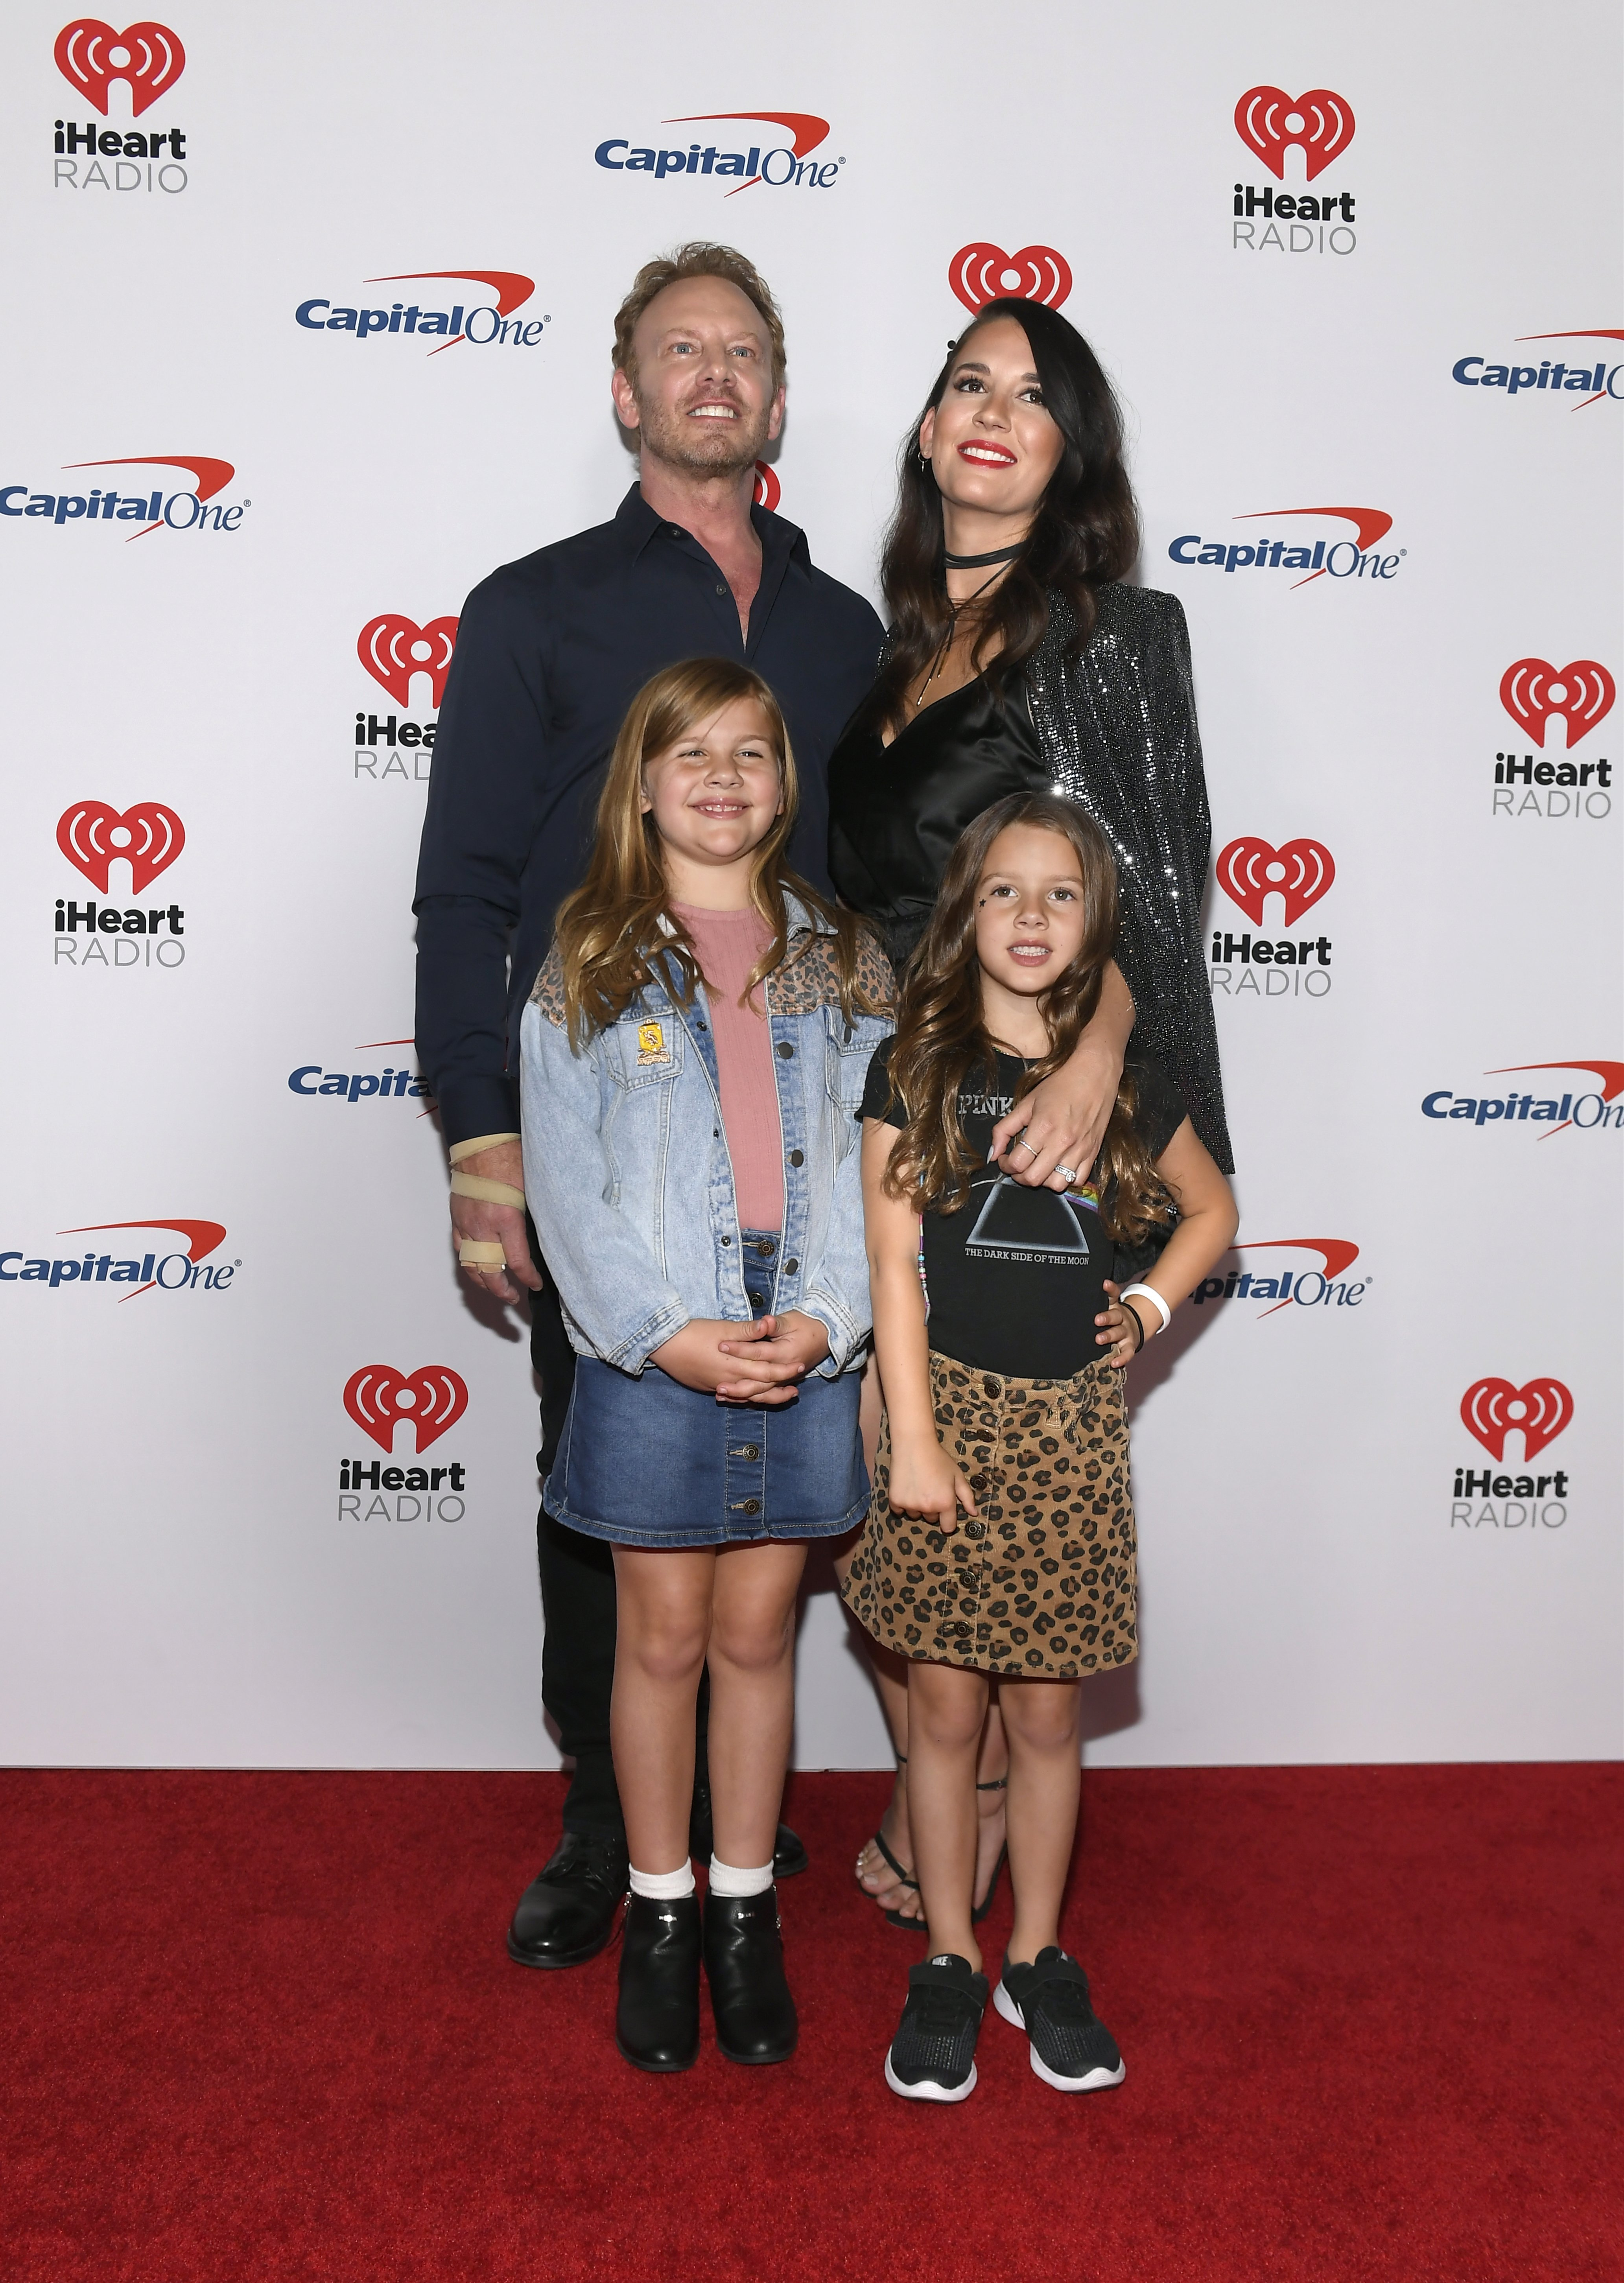 Ian Ziering, Erin Ludwig, Loren Ziering and Penna Ziering attend the 2019 iHeartRadio Music Festival on September 20, 2019, in Las Vegas, Nevada. | Source: Getty Images.